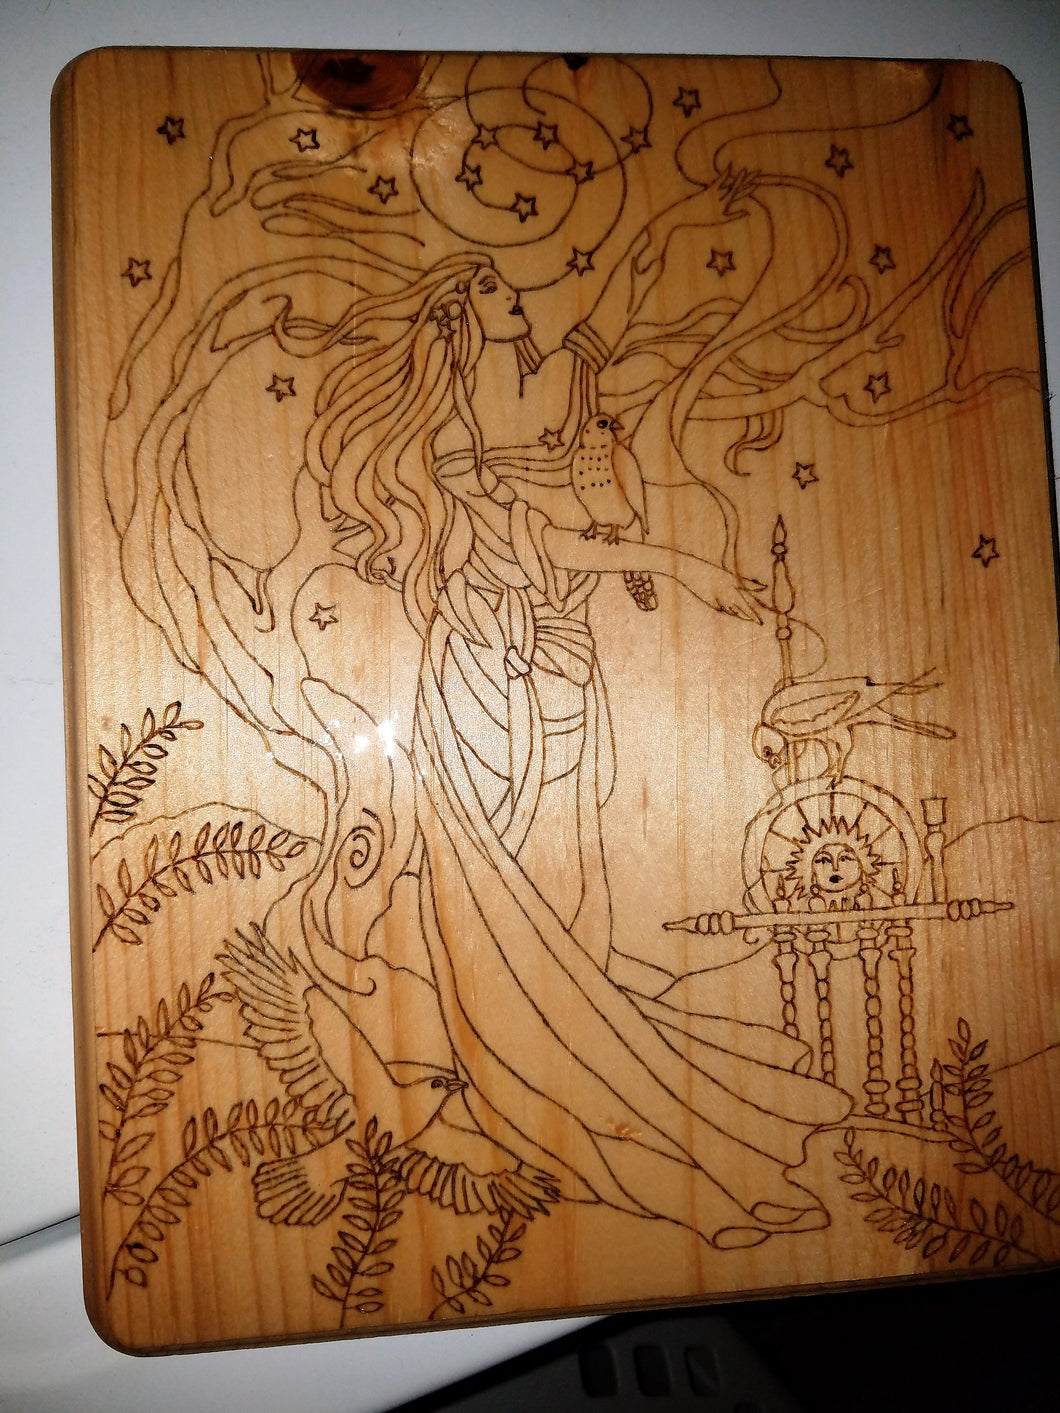 Frigg (wife of Odin) - Odin's Eye Art, Pyrography - woodburning, Odin's Eye Art - Odin's Eye Art